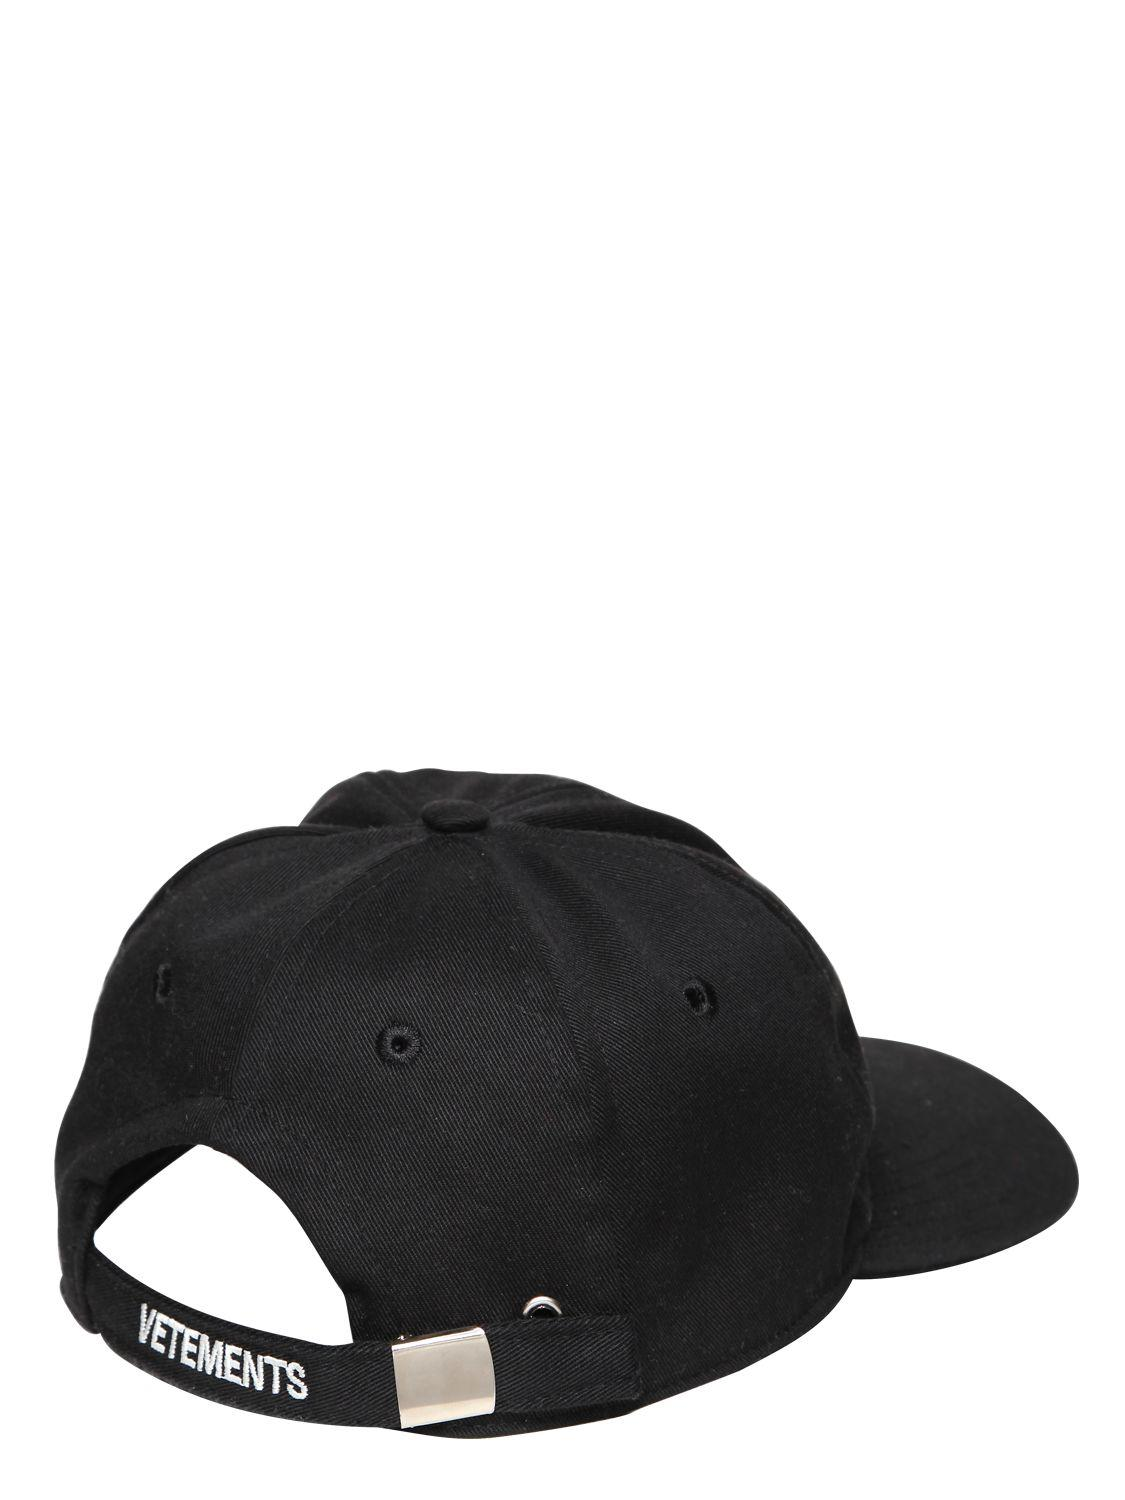 Lyst - Vetements Big Daddy Embroidered Hat in Black for Men ad275f87791